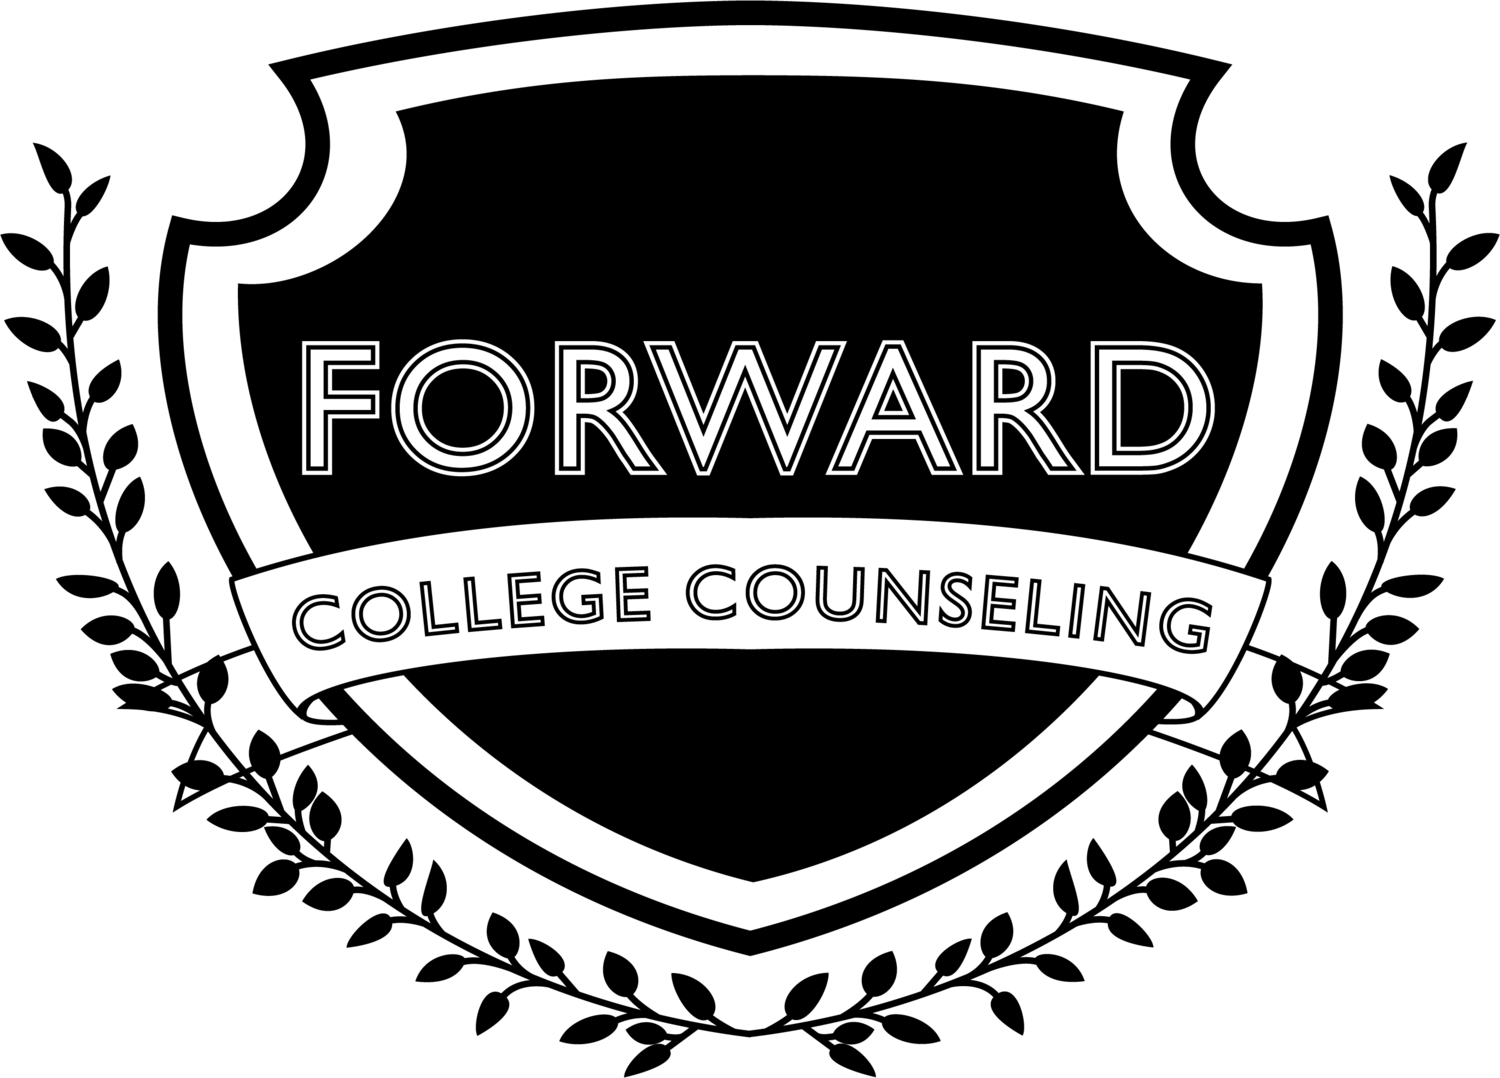 Forward College Counseling